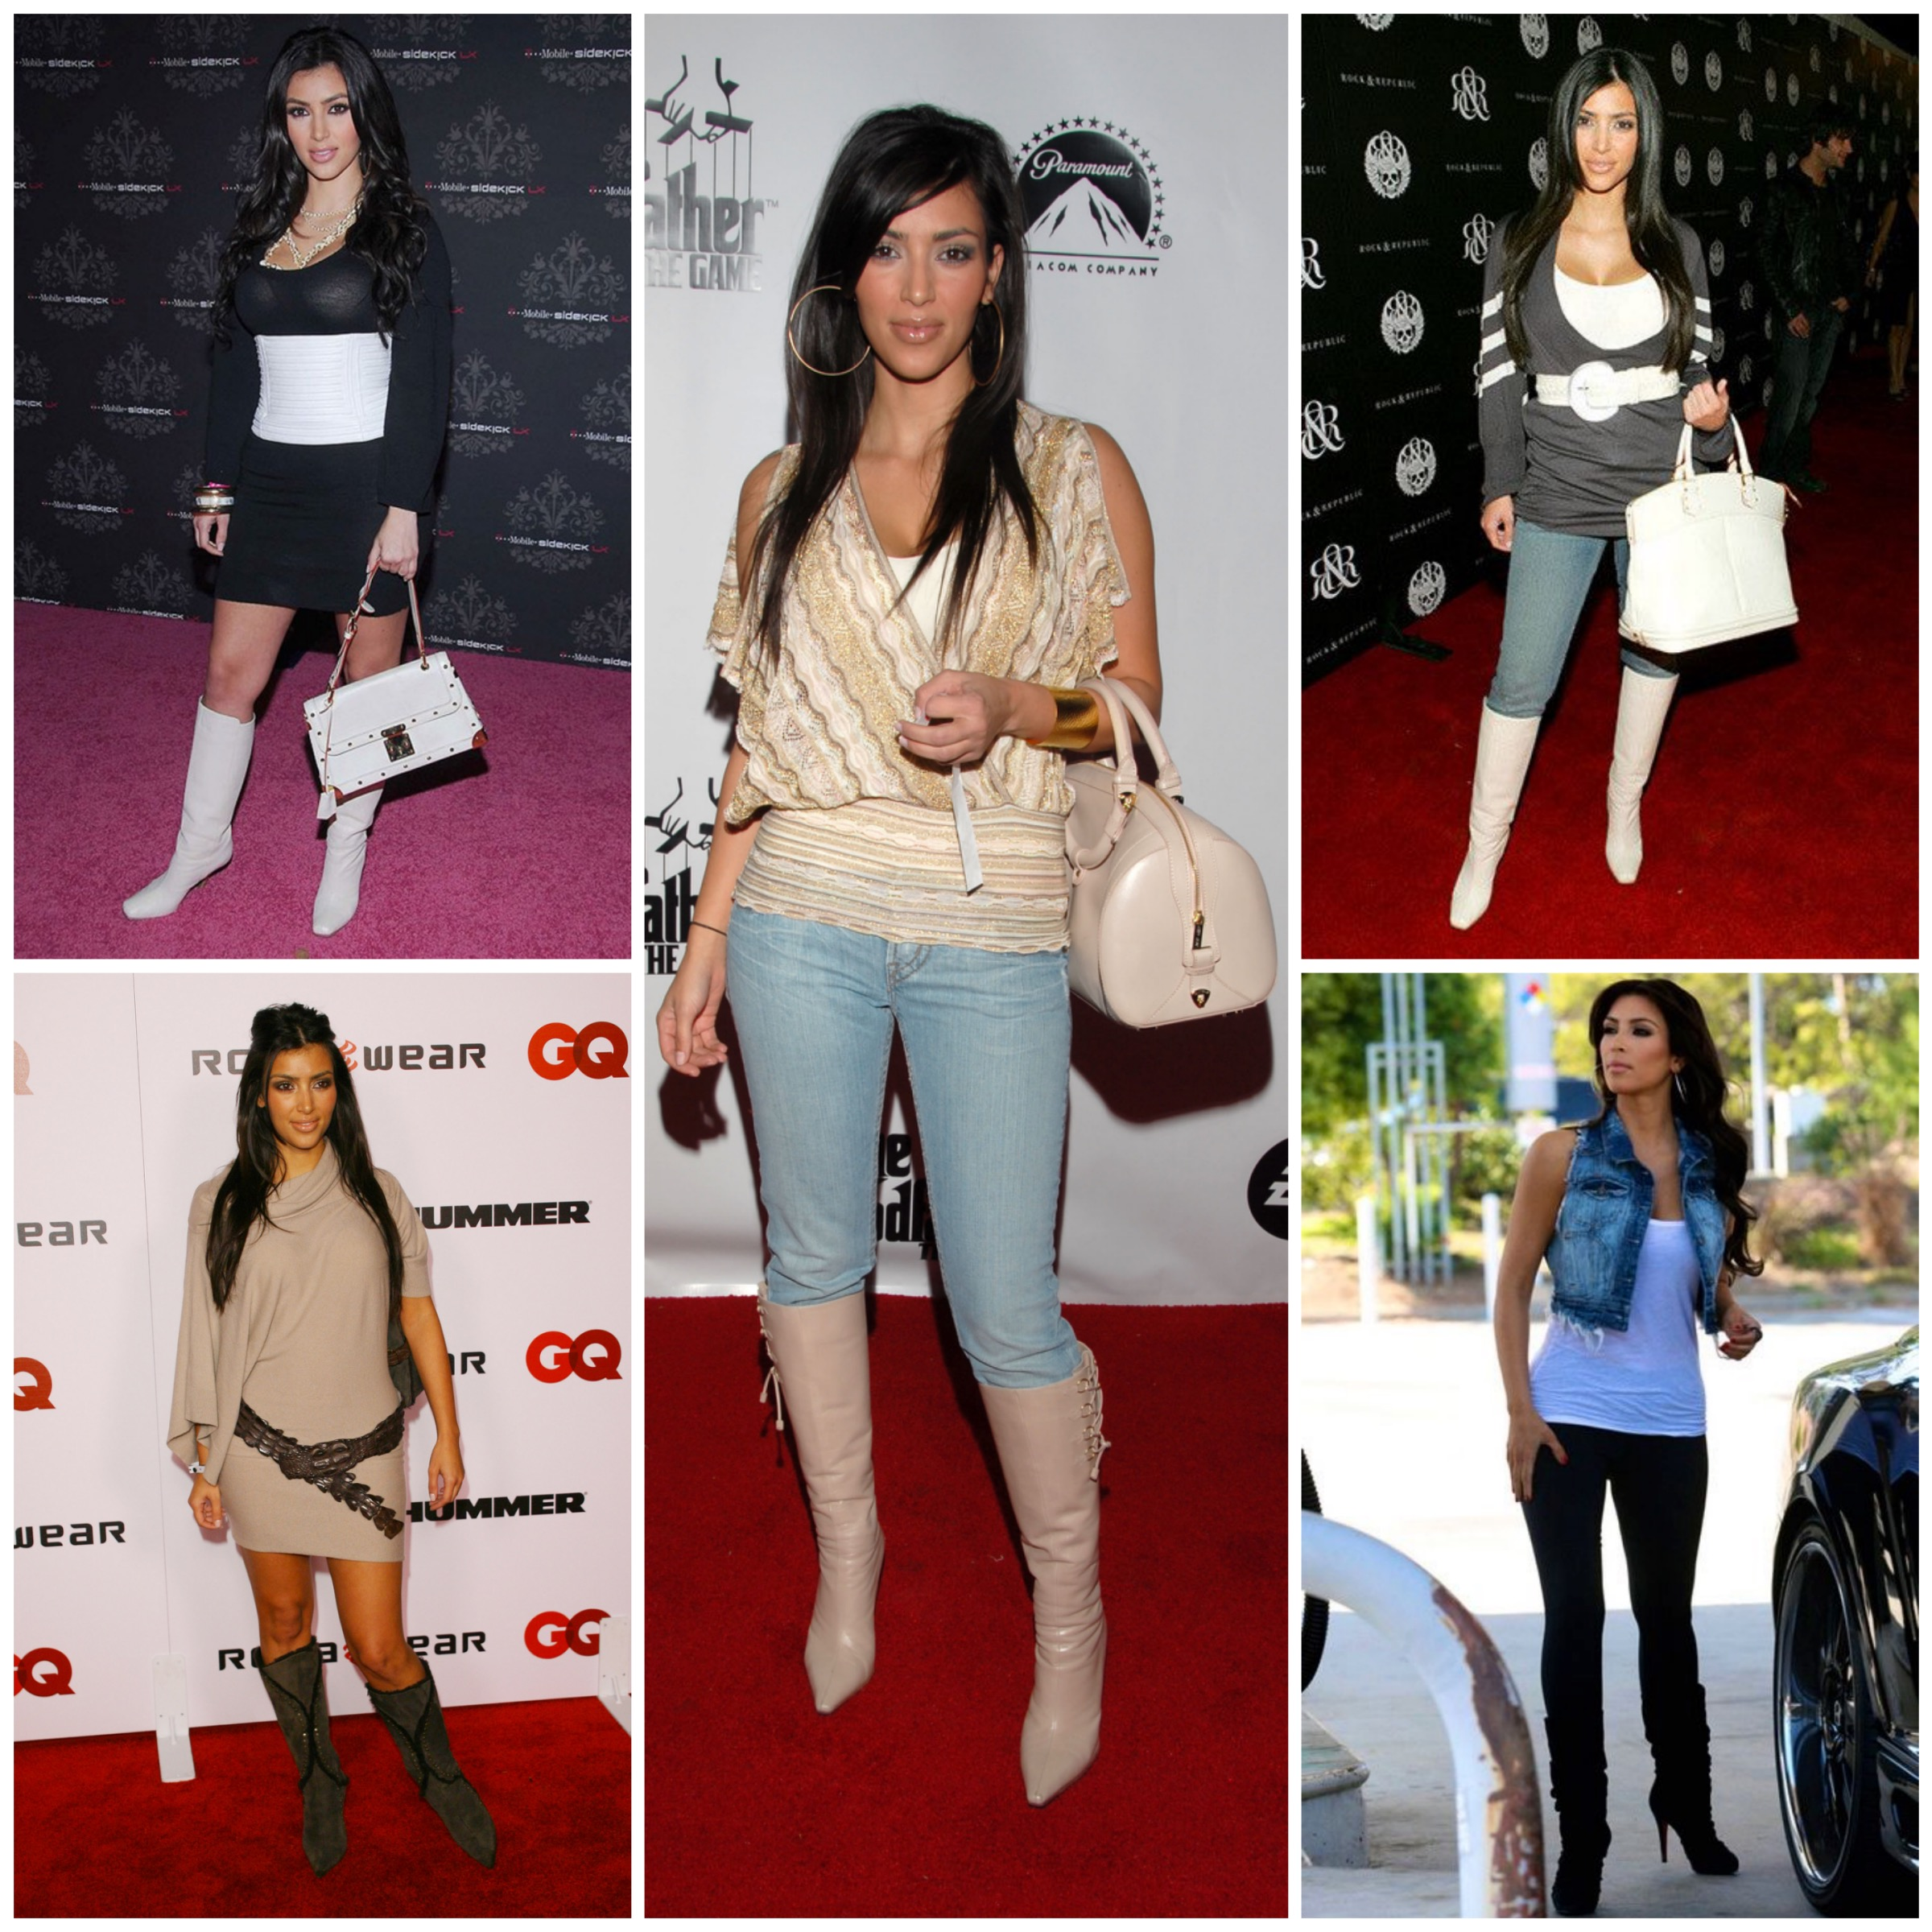 Kim's style before Kanye - Knee high boots